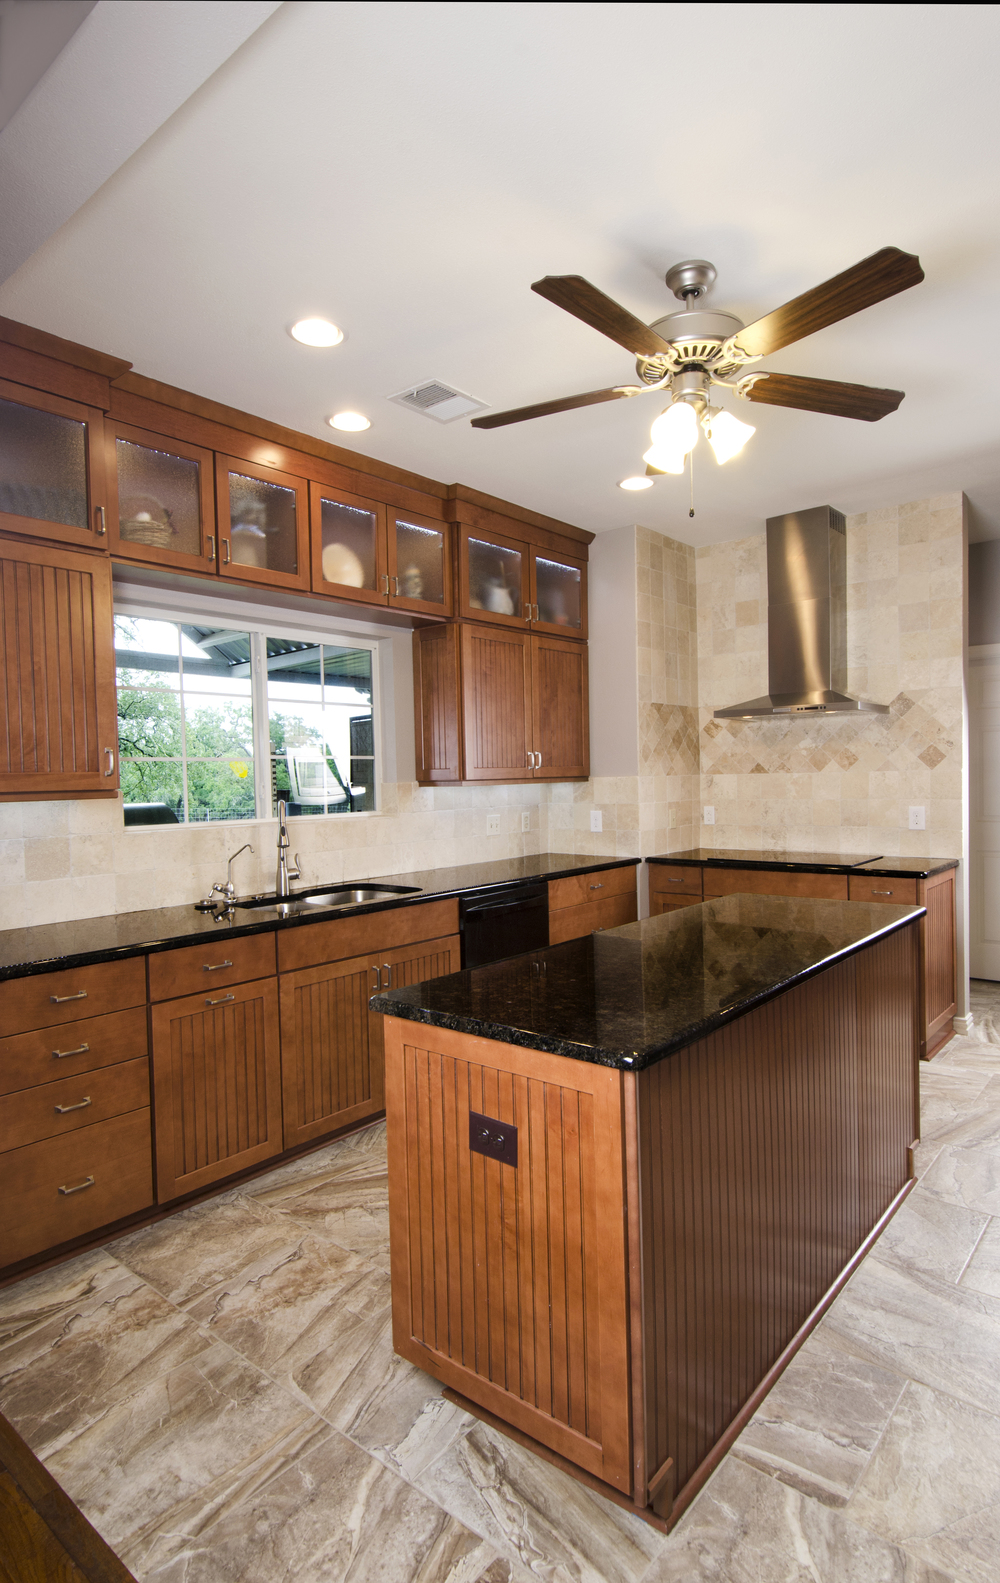 New-Braunfels_74_Rays-kitchen.jpg